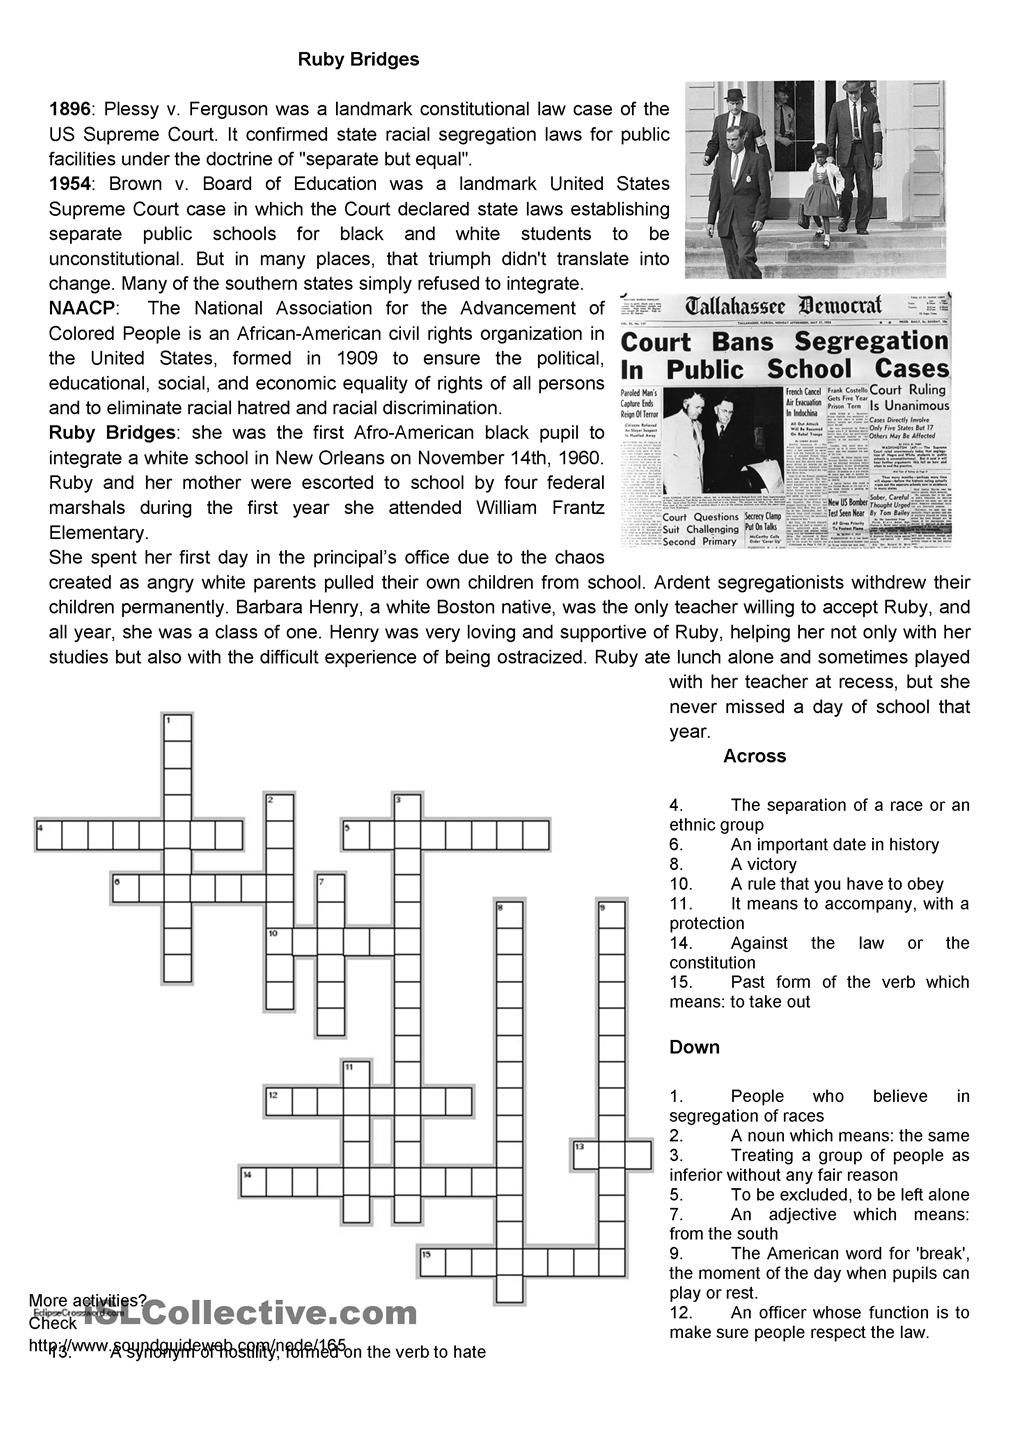 worksheet Civil Rights Worksheets civil rights ruby bridges esl worksheets of the day pinterest worksheet free printable made by teachers